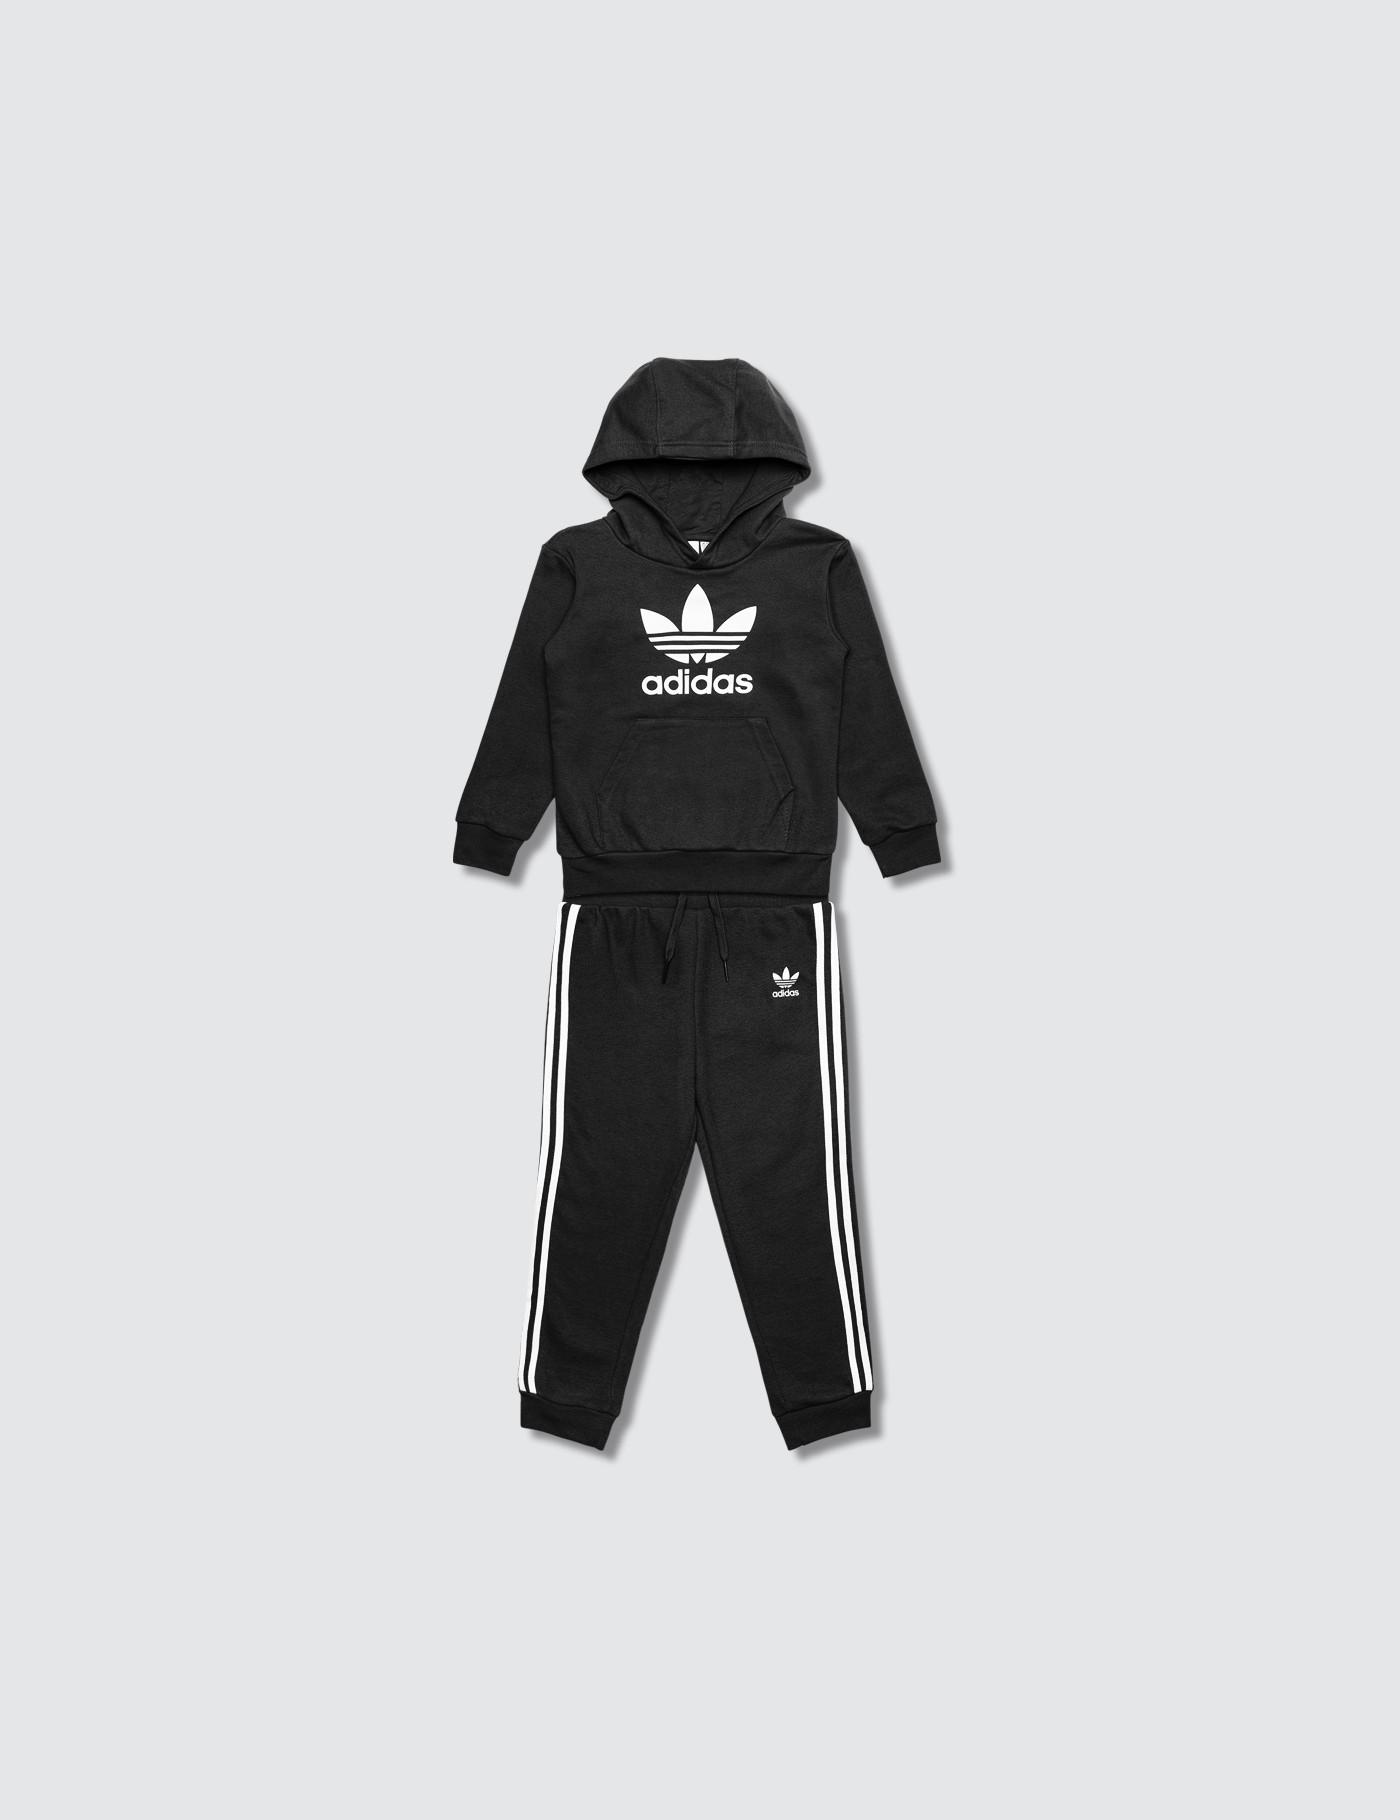 b848663c2fe9 Lyst - adidas Originals Trefoil Hoodie And Pants Set in Black for Men